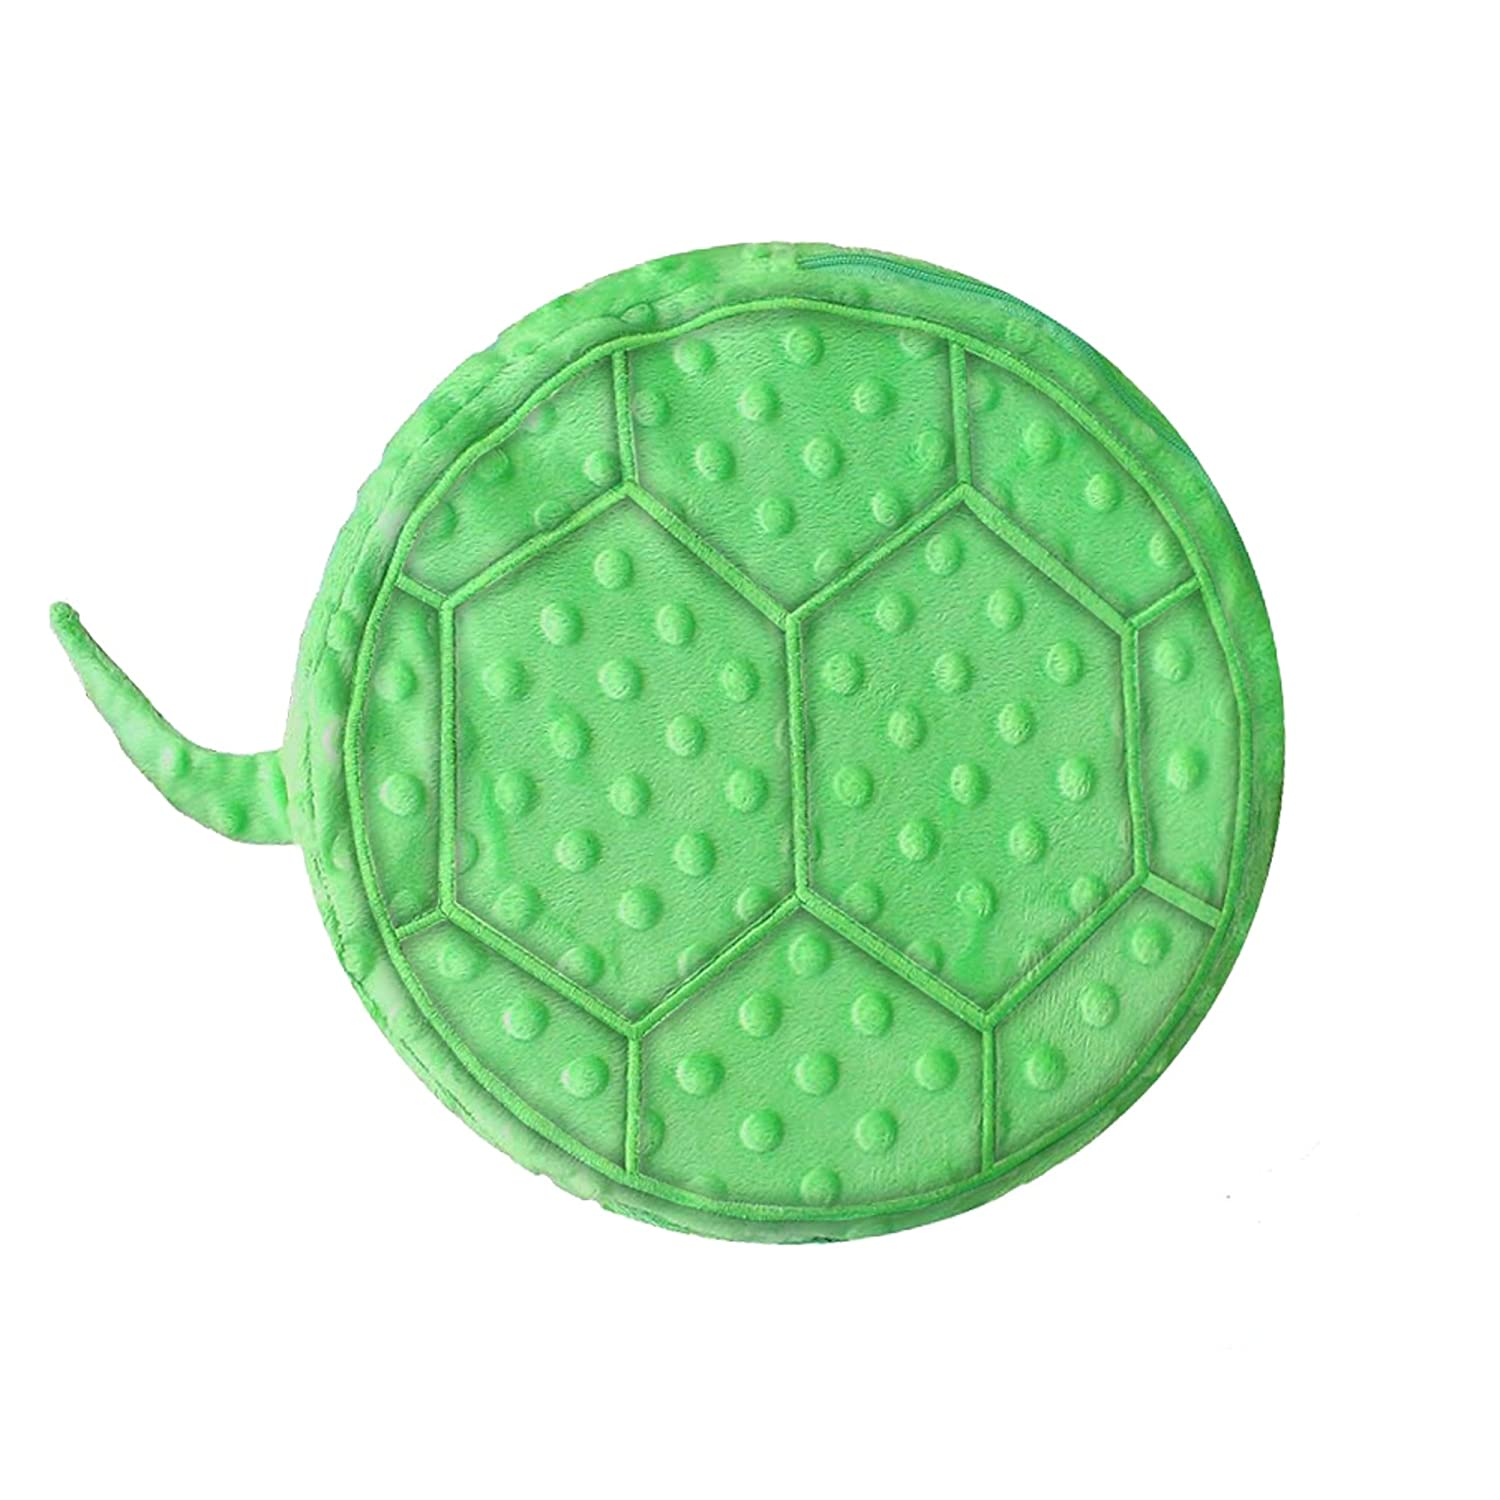 Senseez Calming Cushion for Kids - Bumpy Turtle SENZ58766